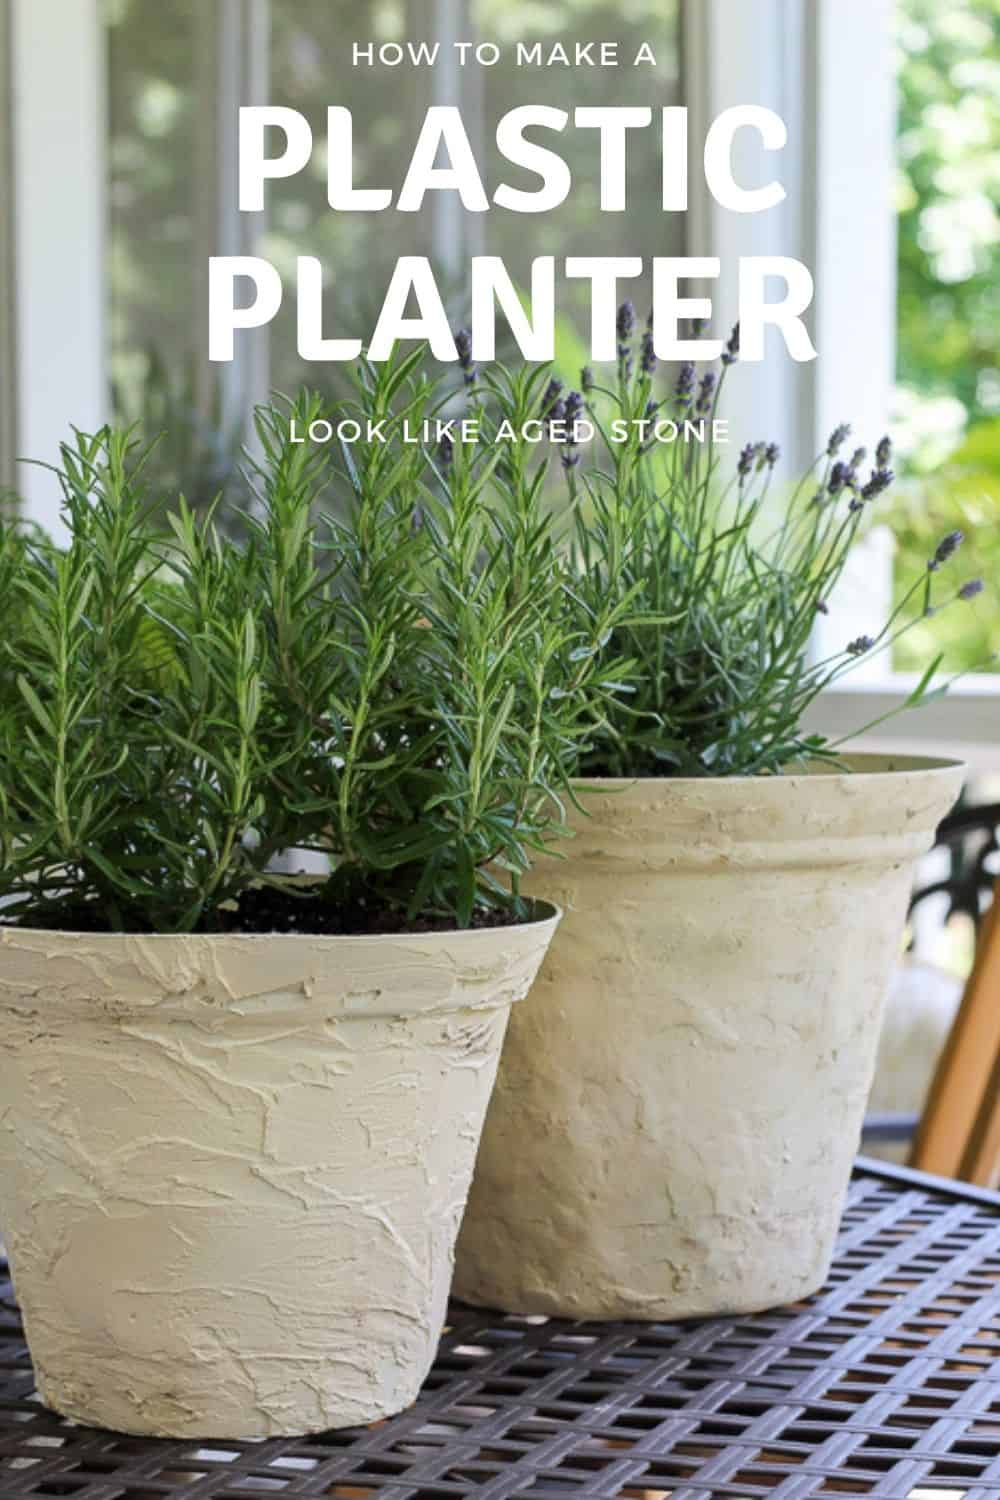 how to make-a-plastic-planter-pot-look-like-aged-stone